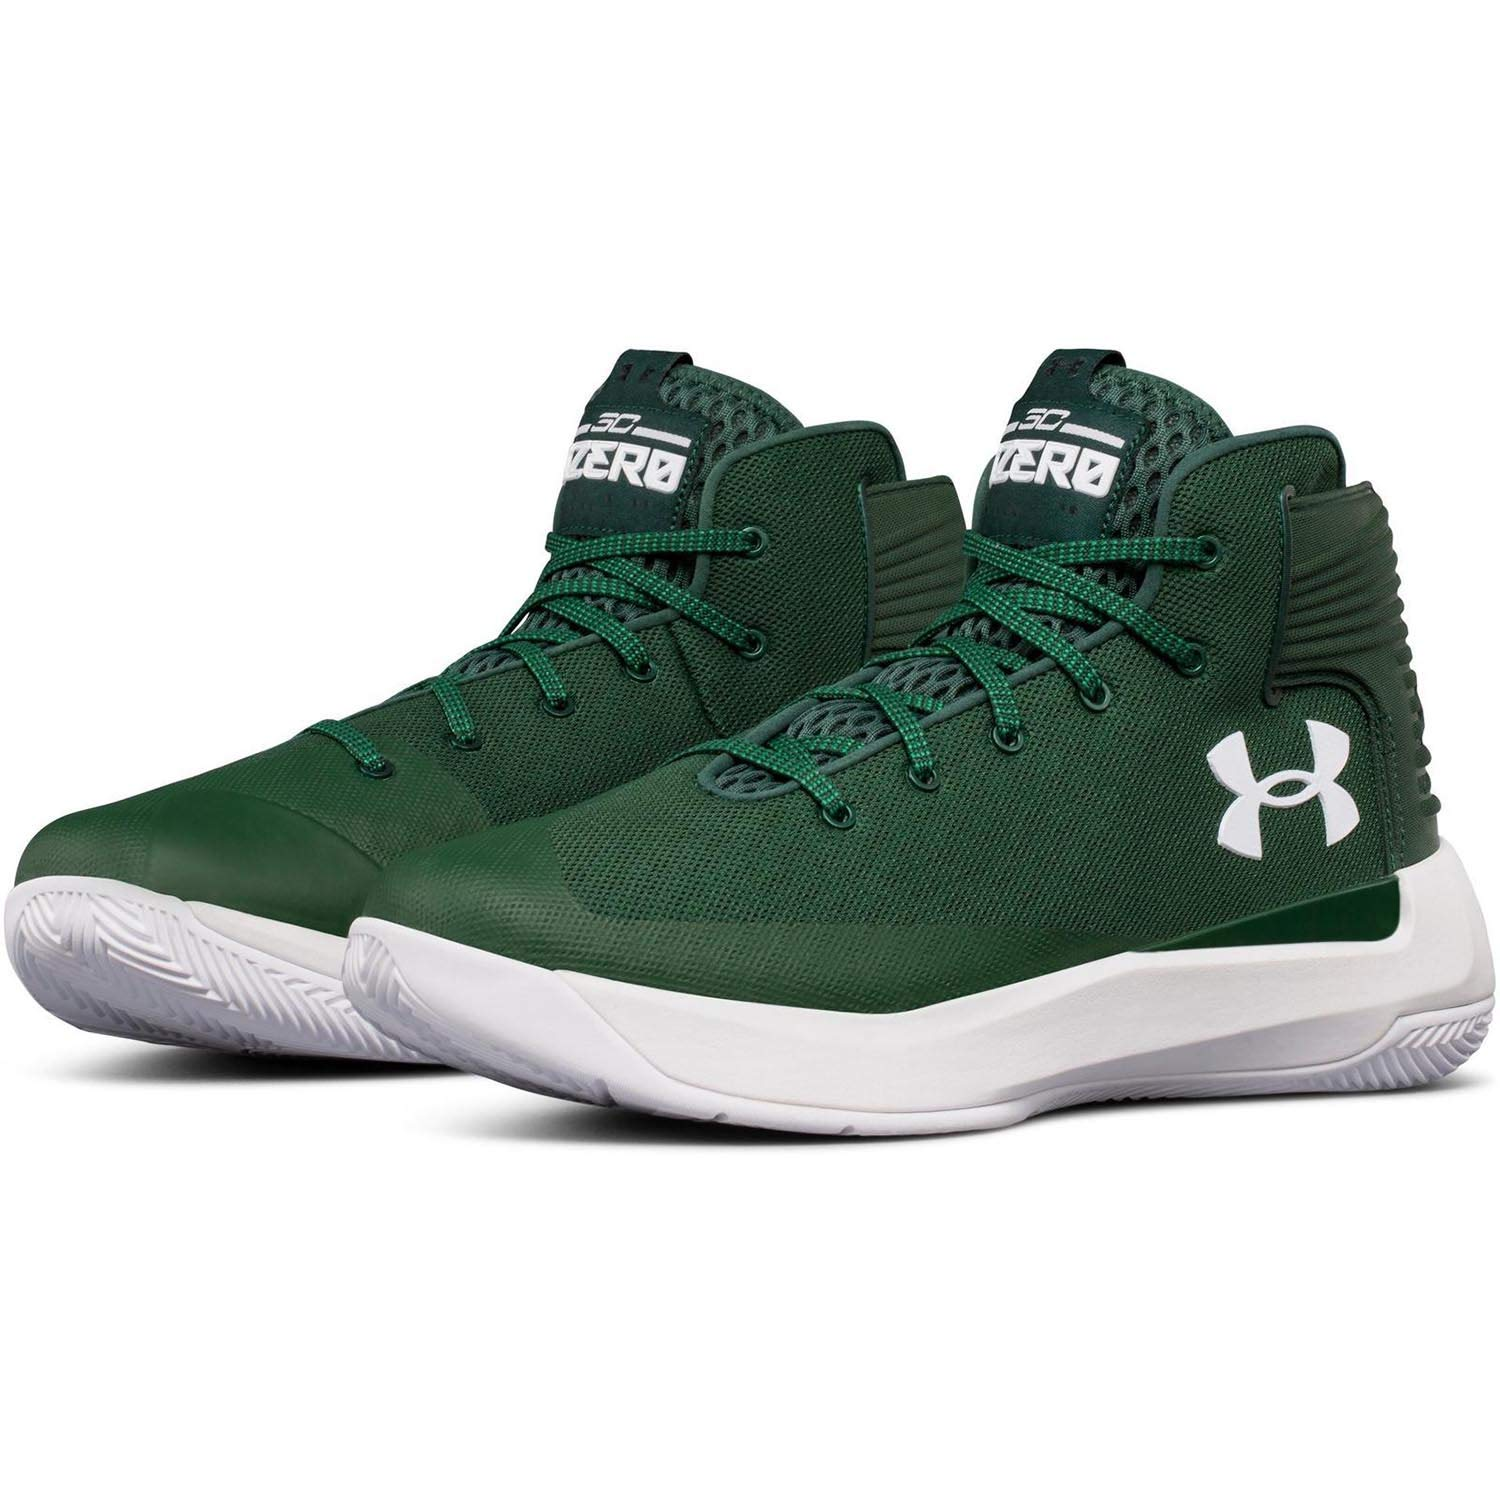 c79408df79c2 Galleon - Under Armour Mens Curry 3 Basketball Shoe (11.5 M US ...